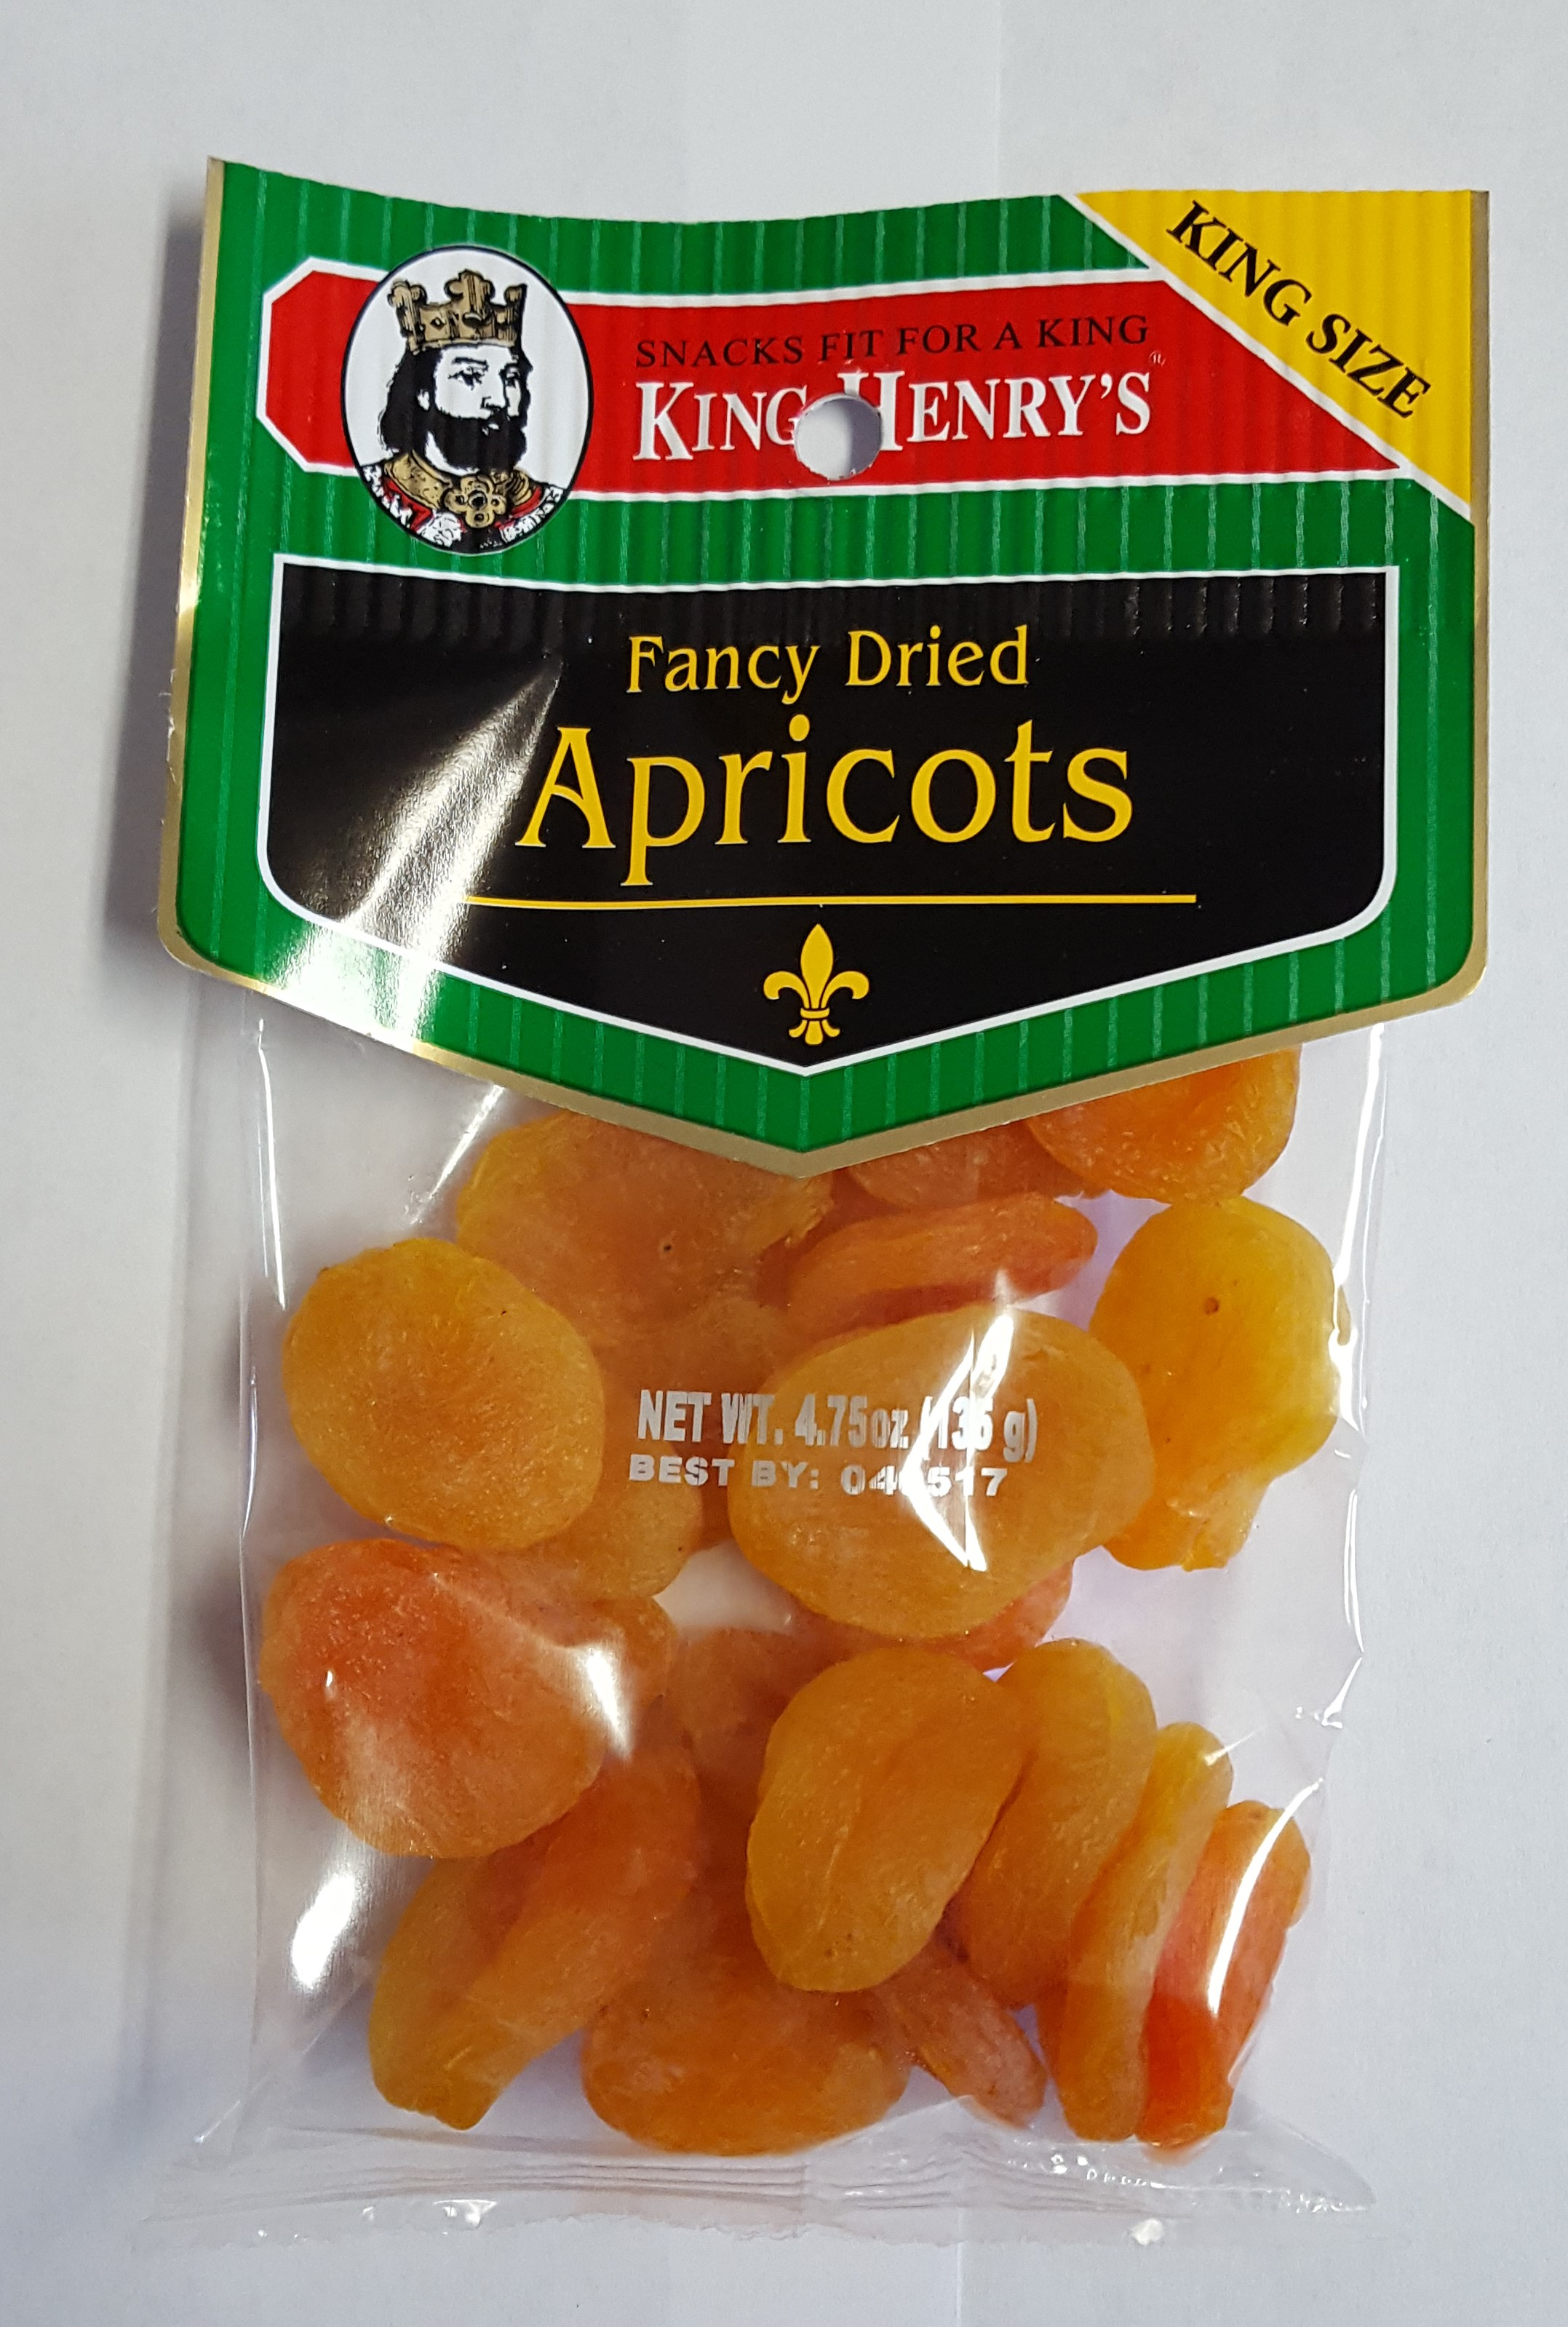 King Henry's Dried Apricots